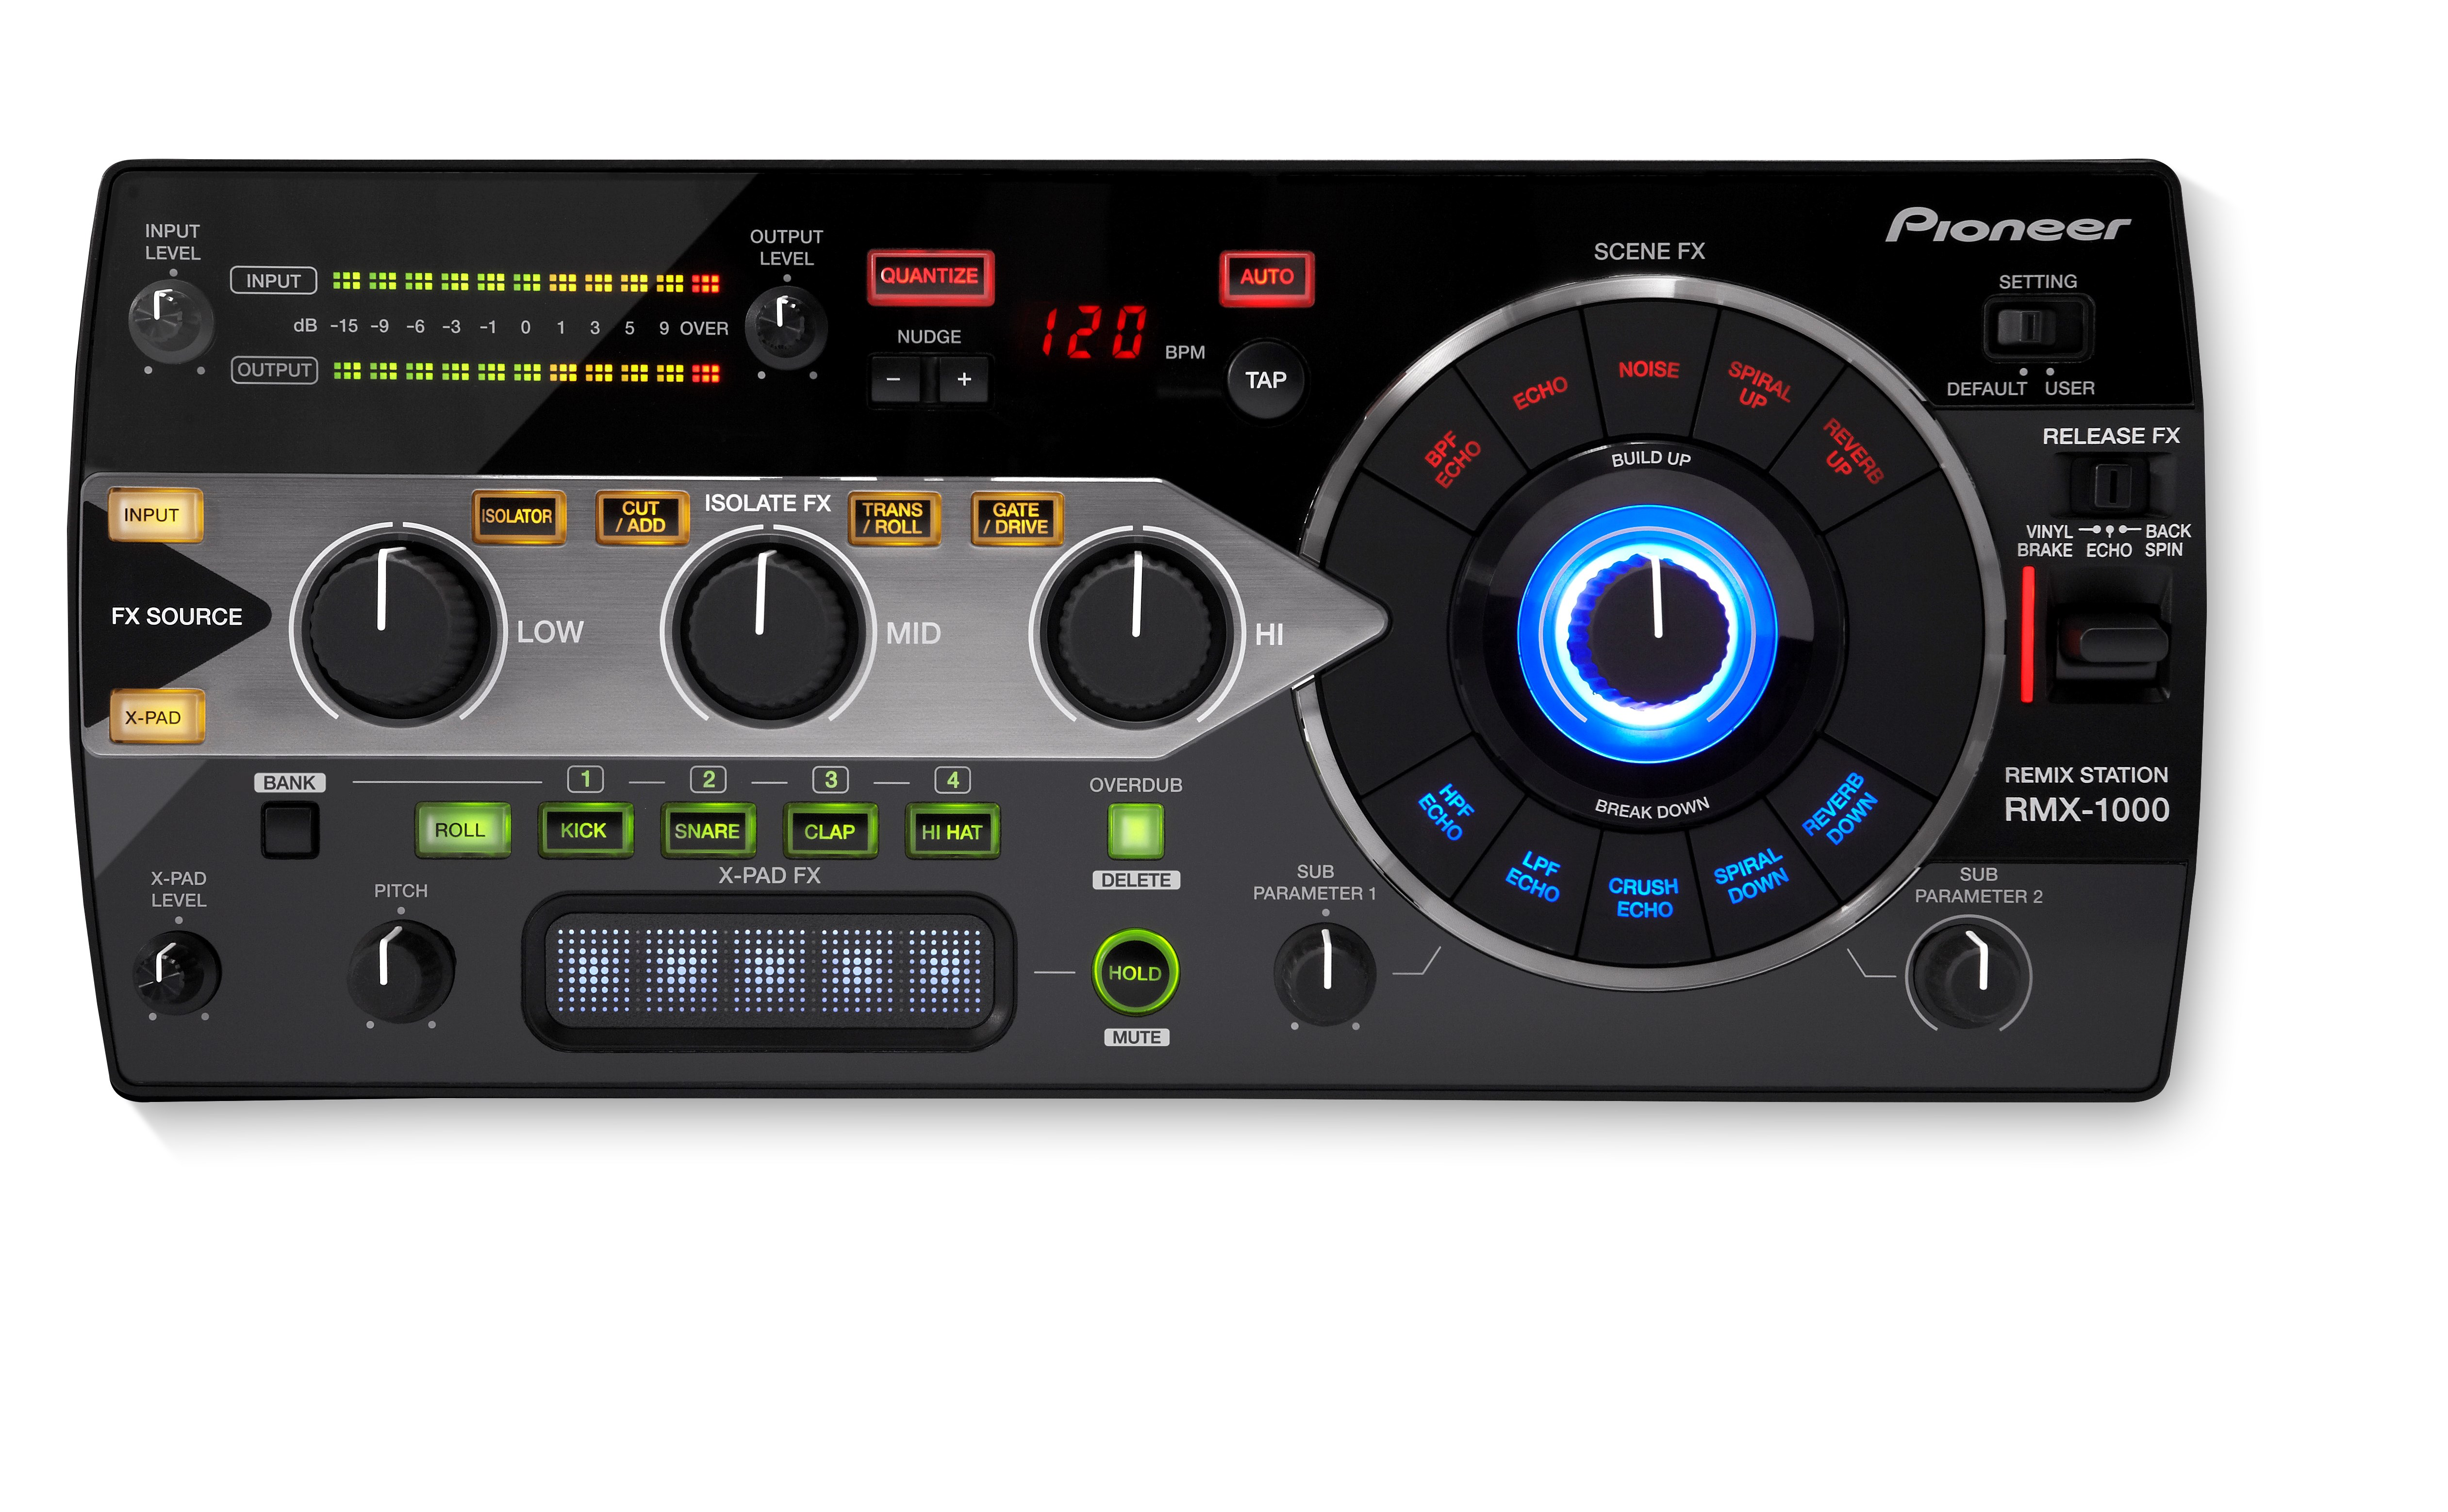 RMX-1000 3-in-1 remix station for editing, performing and